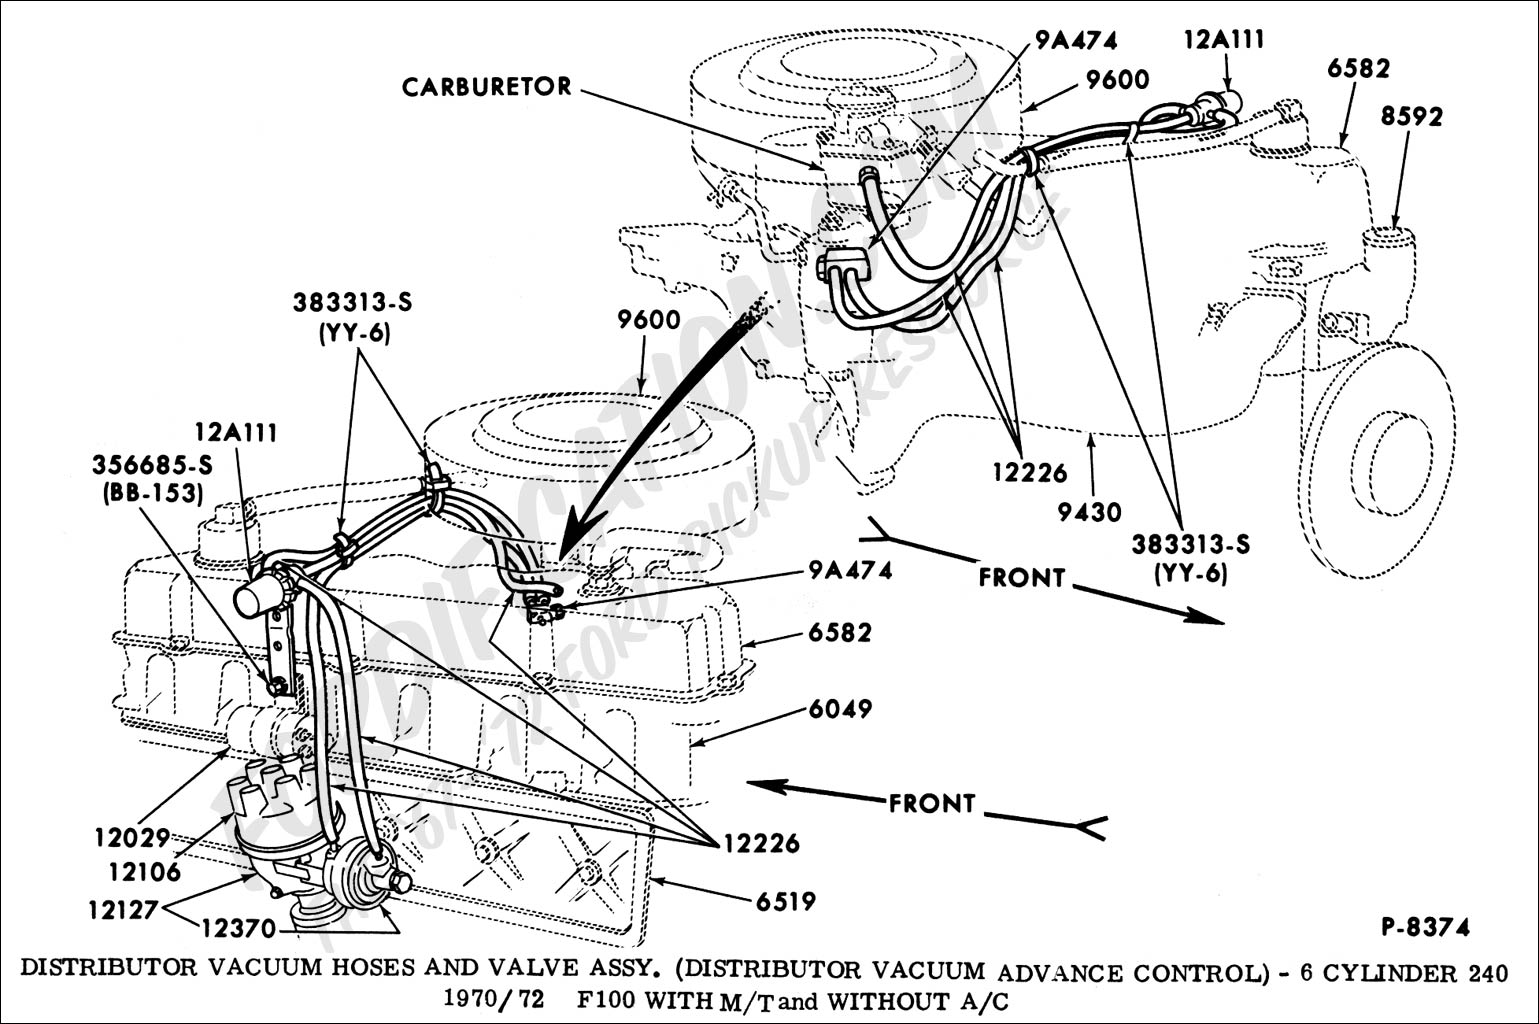 Ford 360 Engine Diagram Wiring Library 351 Distributor Truck Technical Drawings And Schematics Section I Electrical